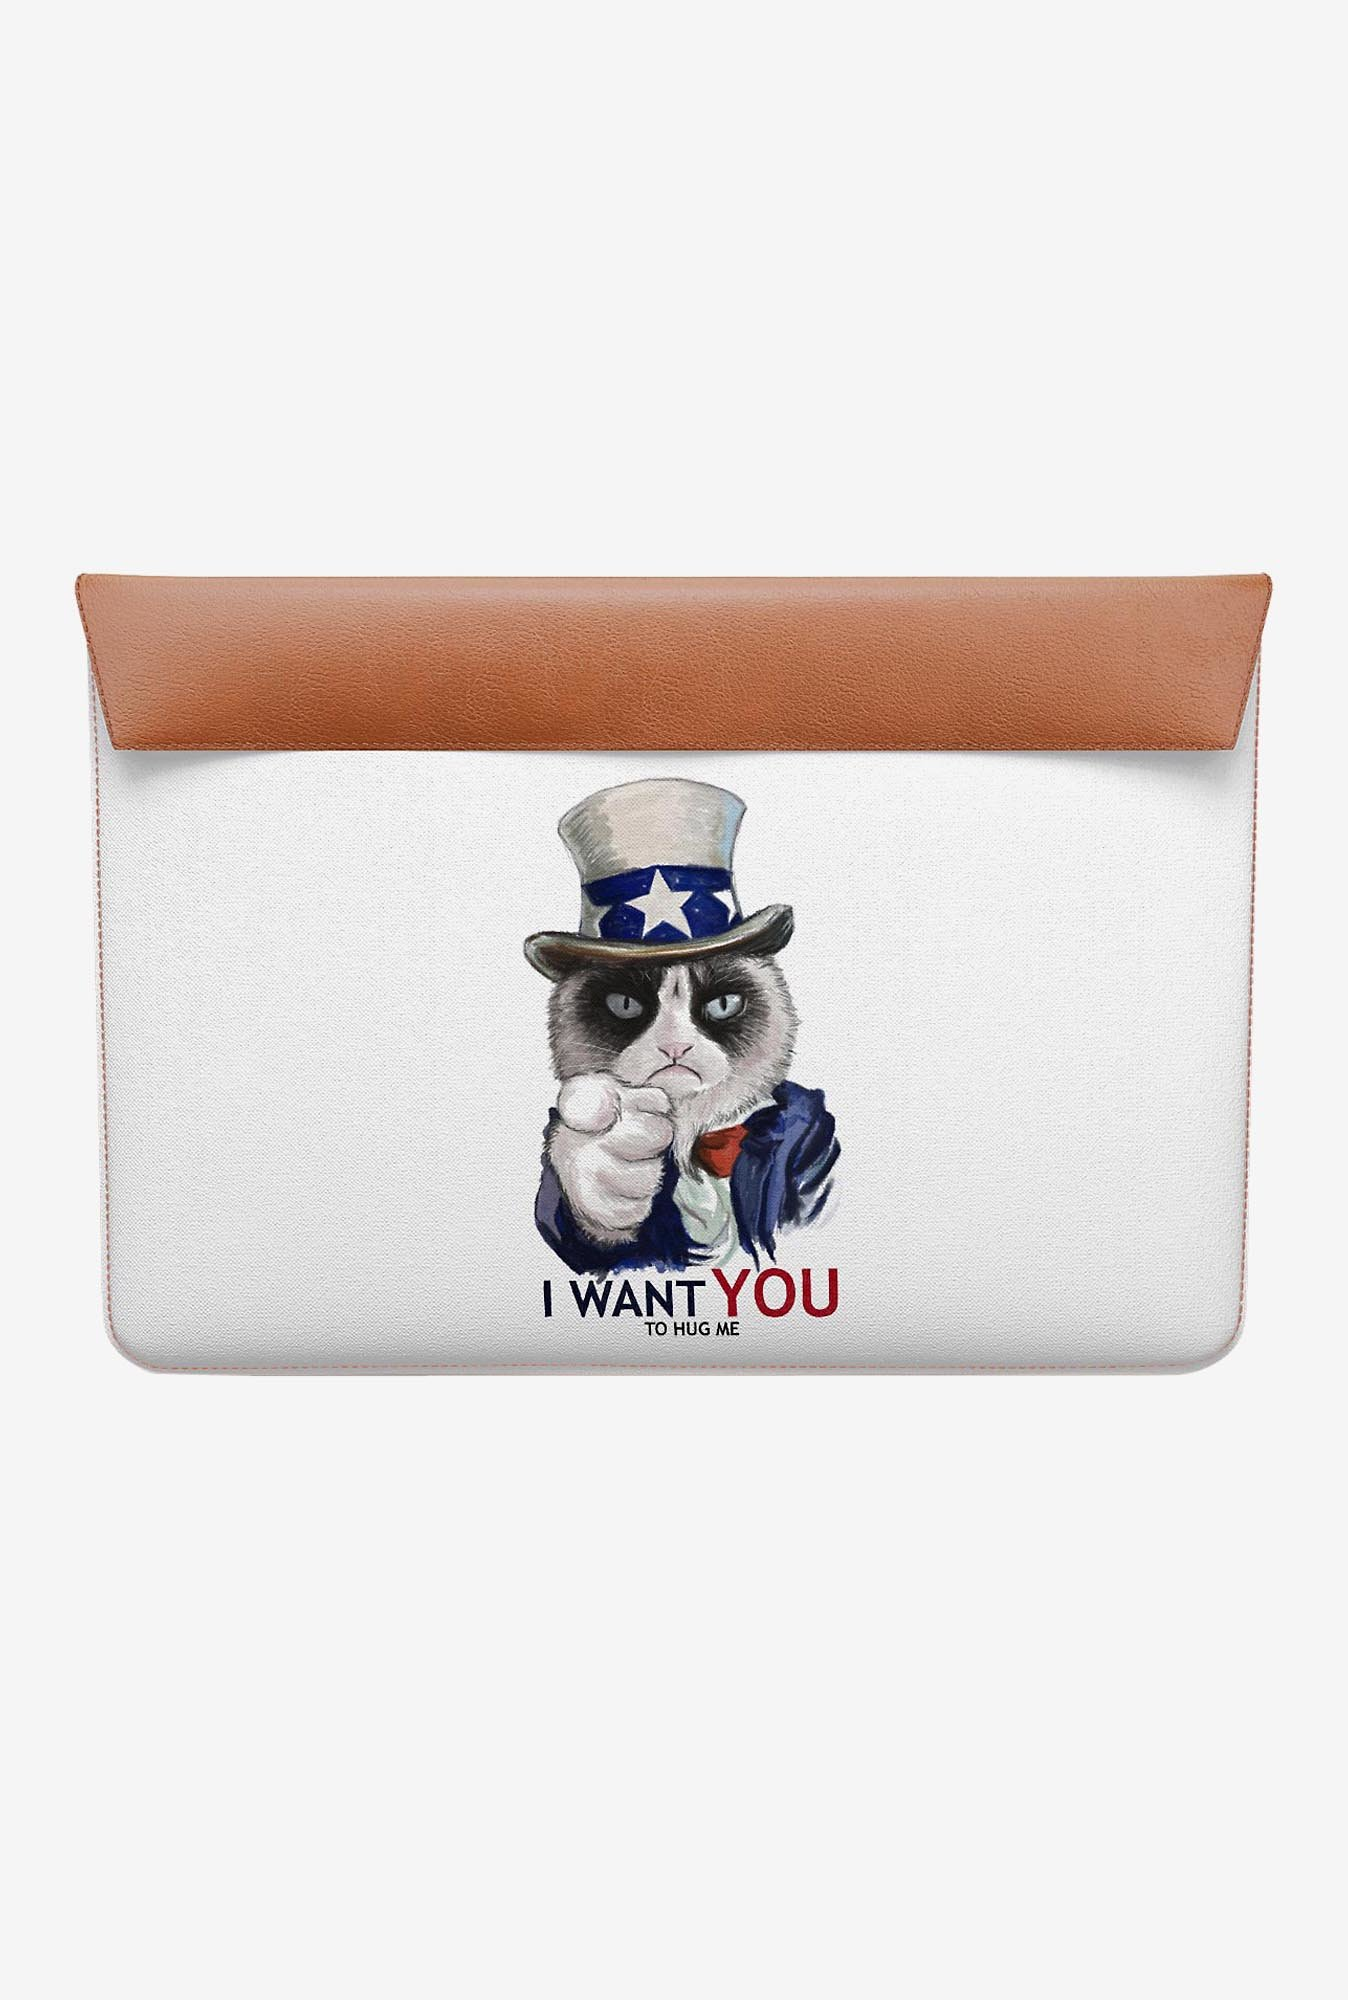 DailyObjects Uncle Sam Cat MacBook 12 Envelope Sleeve